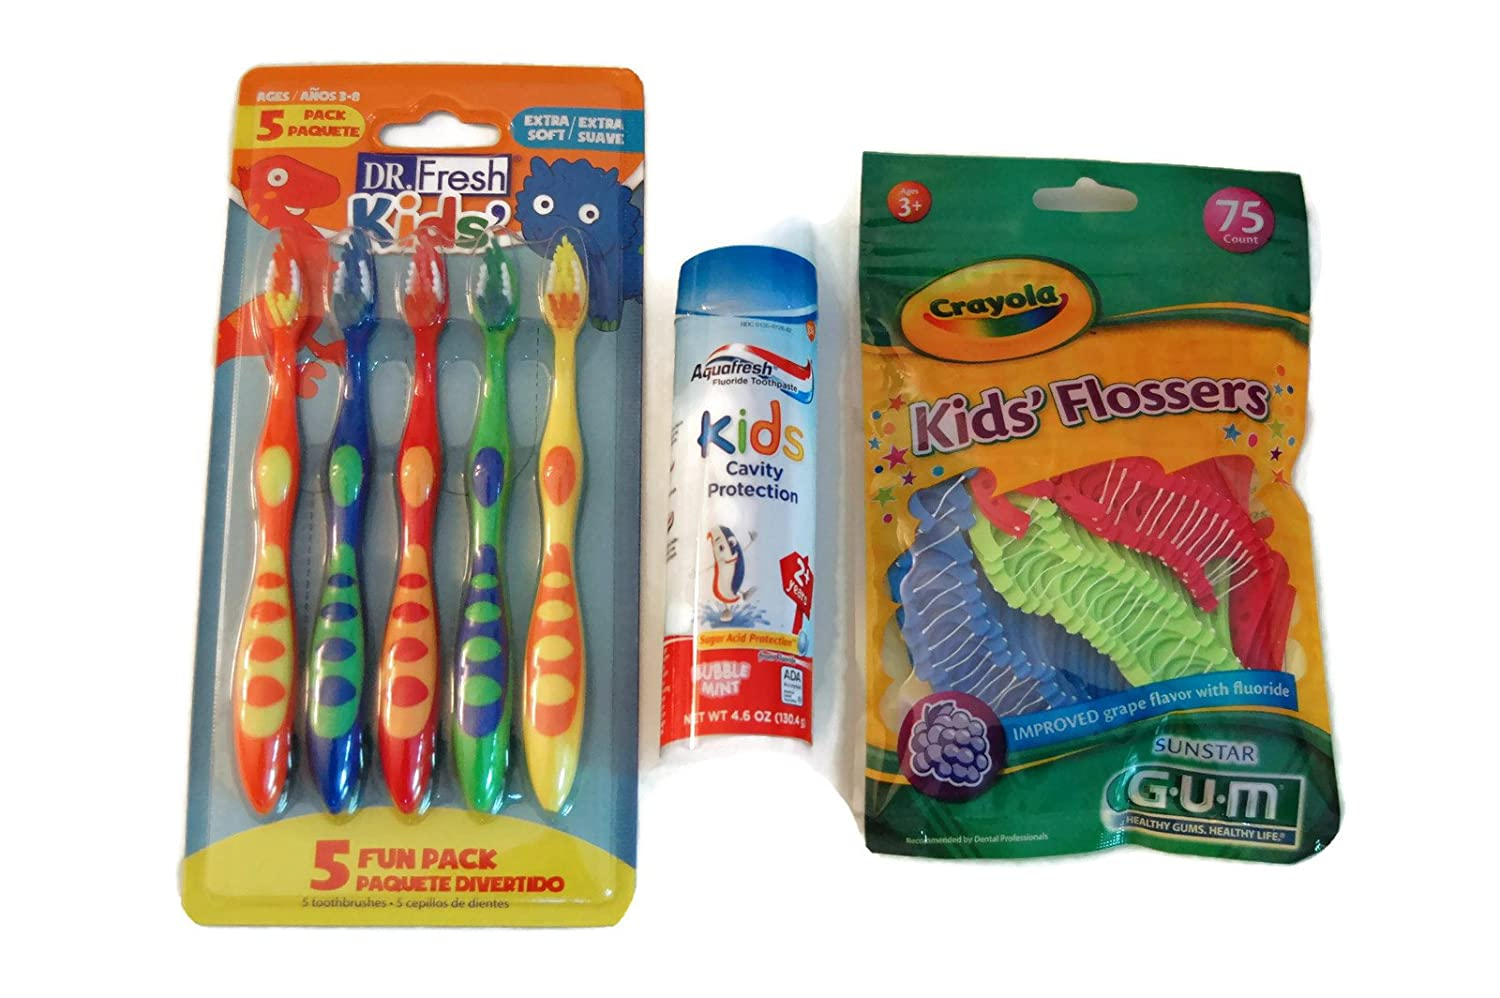 Amazon.com: Good Habit dental bundle for kids-3 pack: Toothbrushes, flossers and toothpaste: Beauty